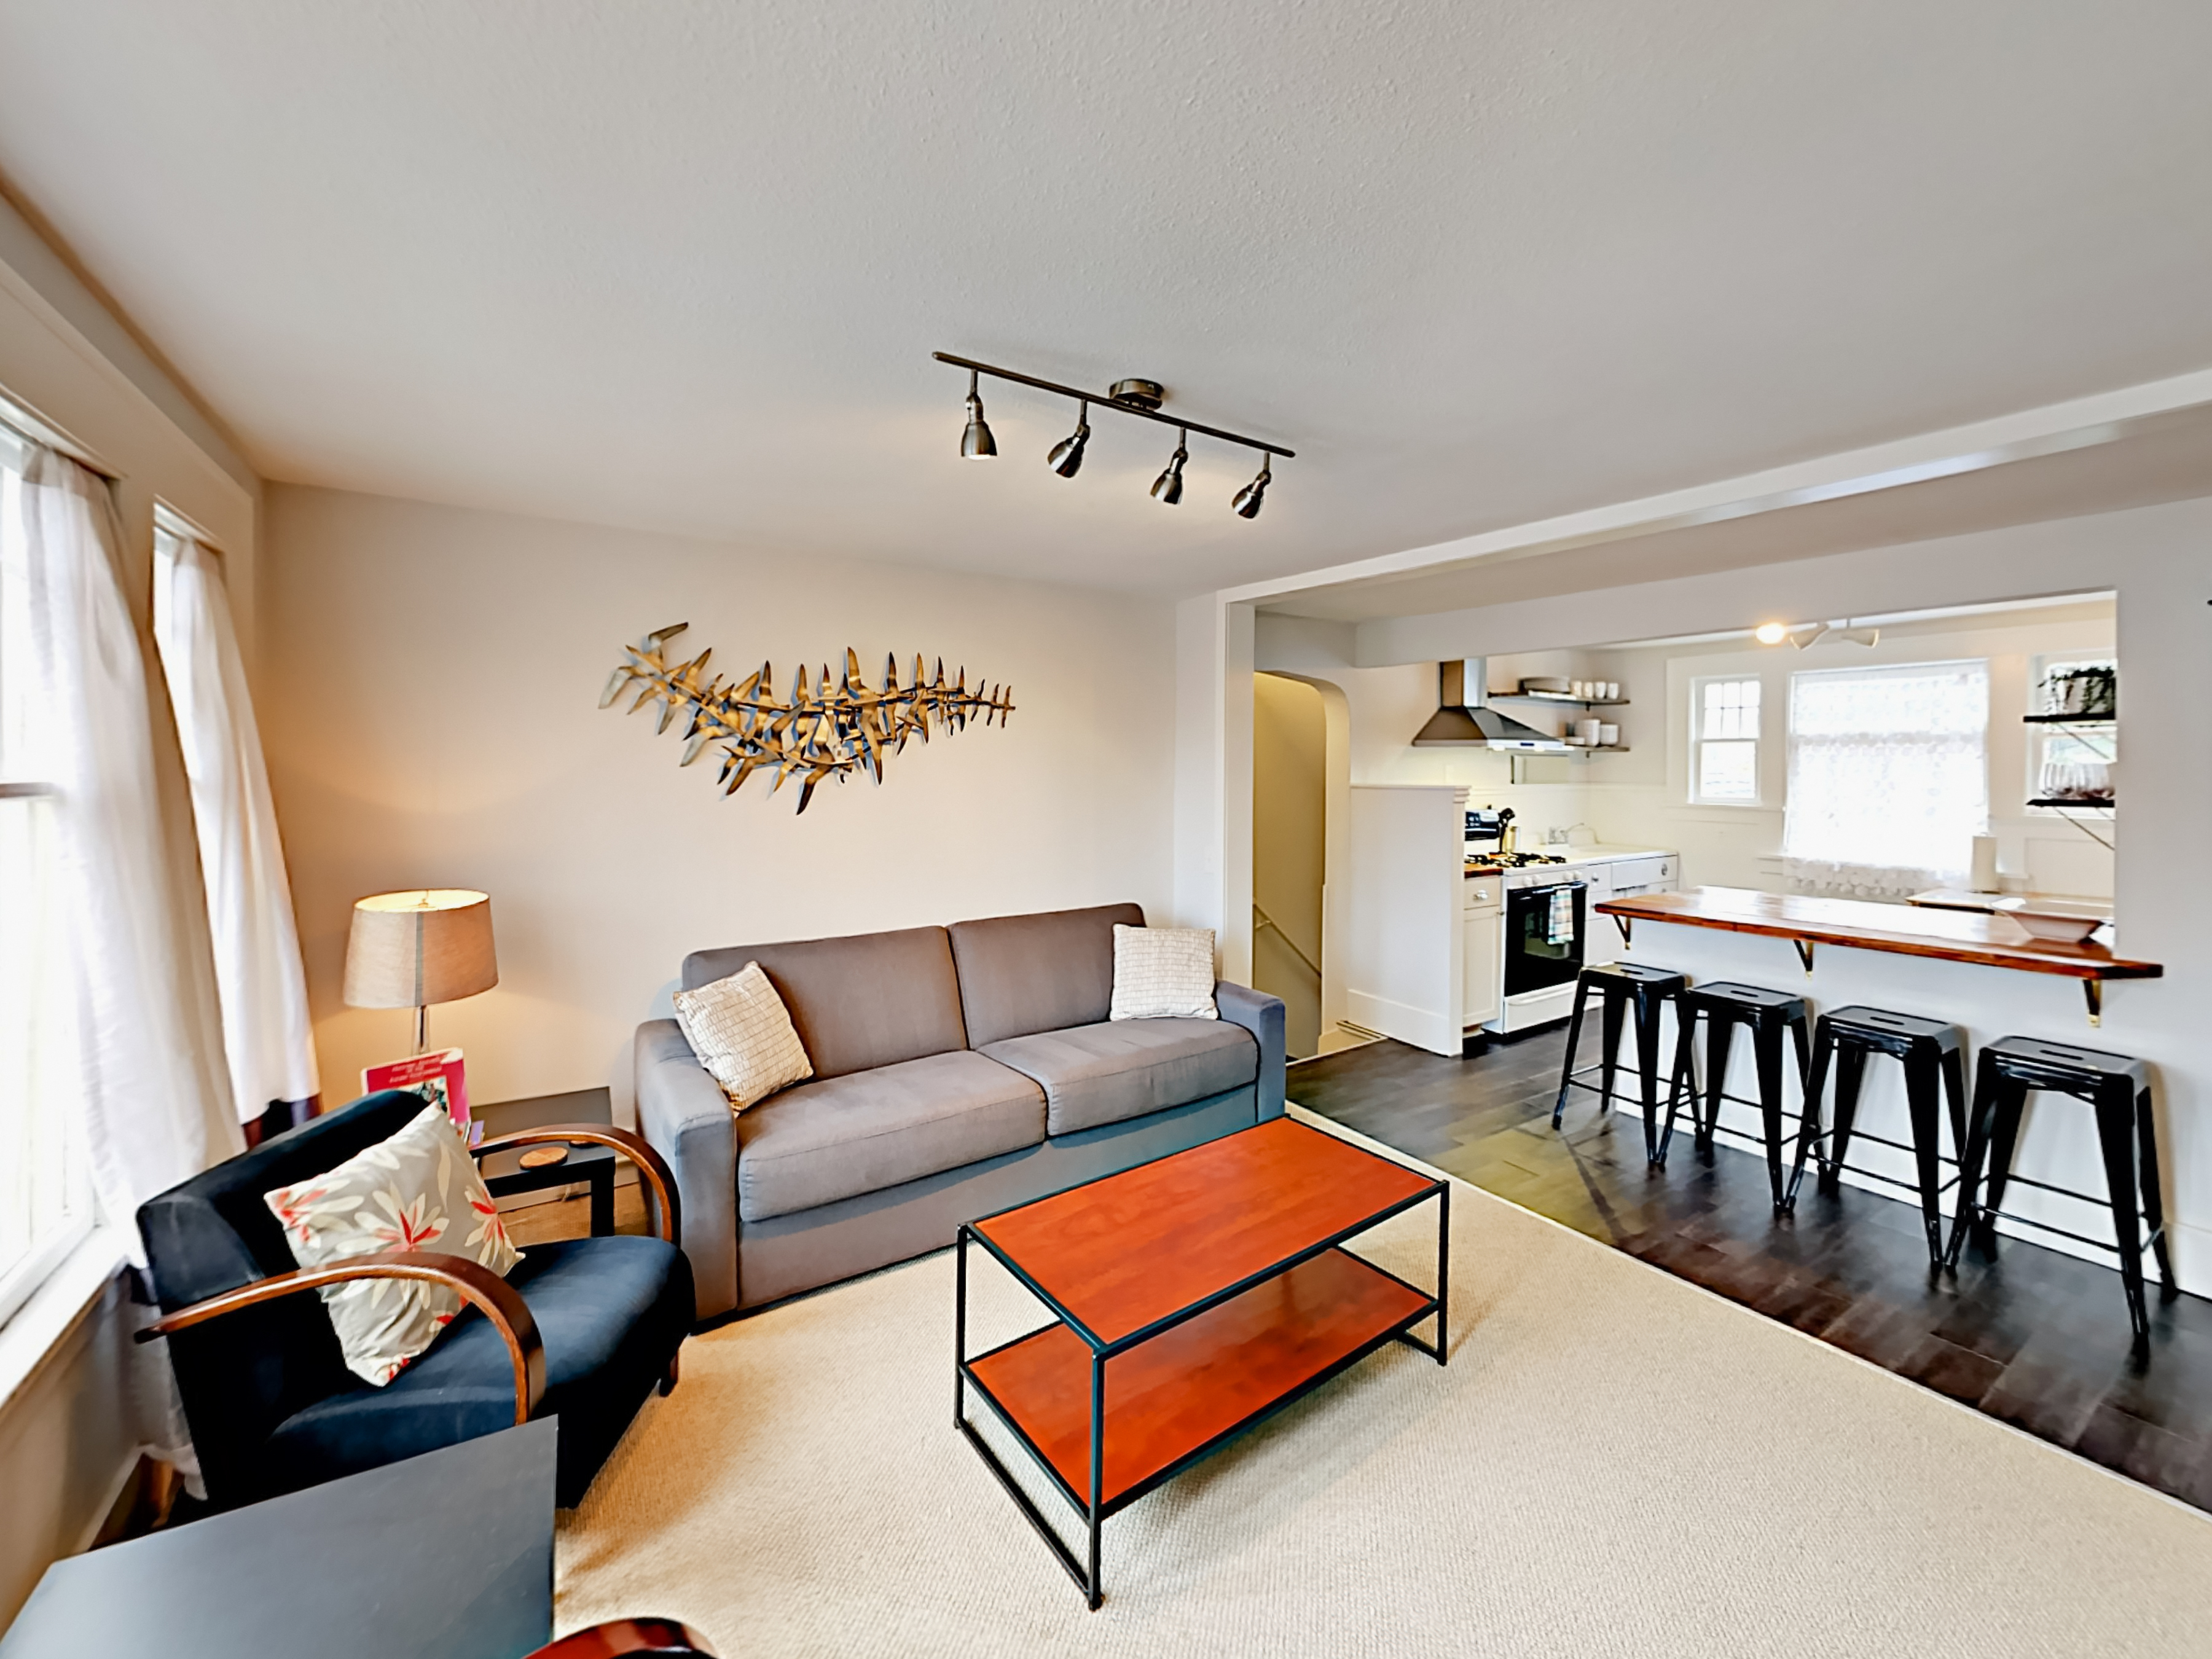 Seattle WA Vacation Rental This property is